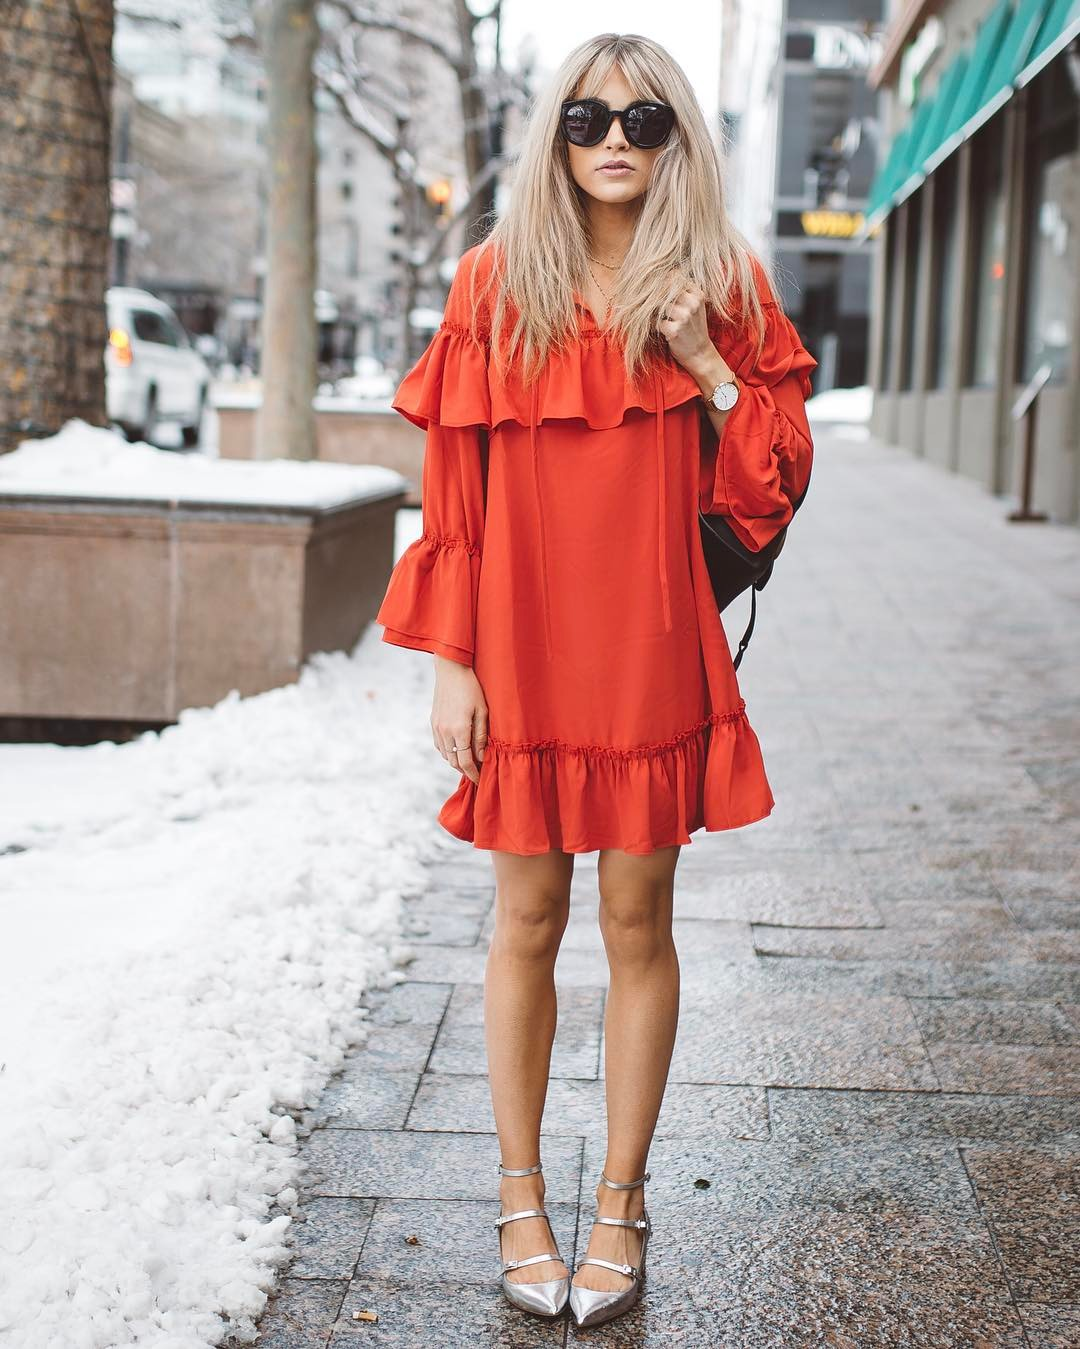 The new york vanity was named perfectly it has that city chic look - Cara Van Brocklin Is A Utah Based Wife And Mother Of Two Young Boys Who Has A Killer Sense Of Style And Some Seriously Perfect Hair